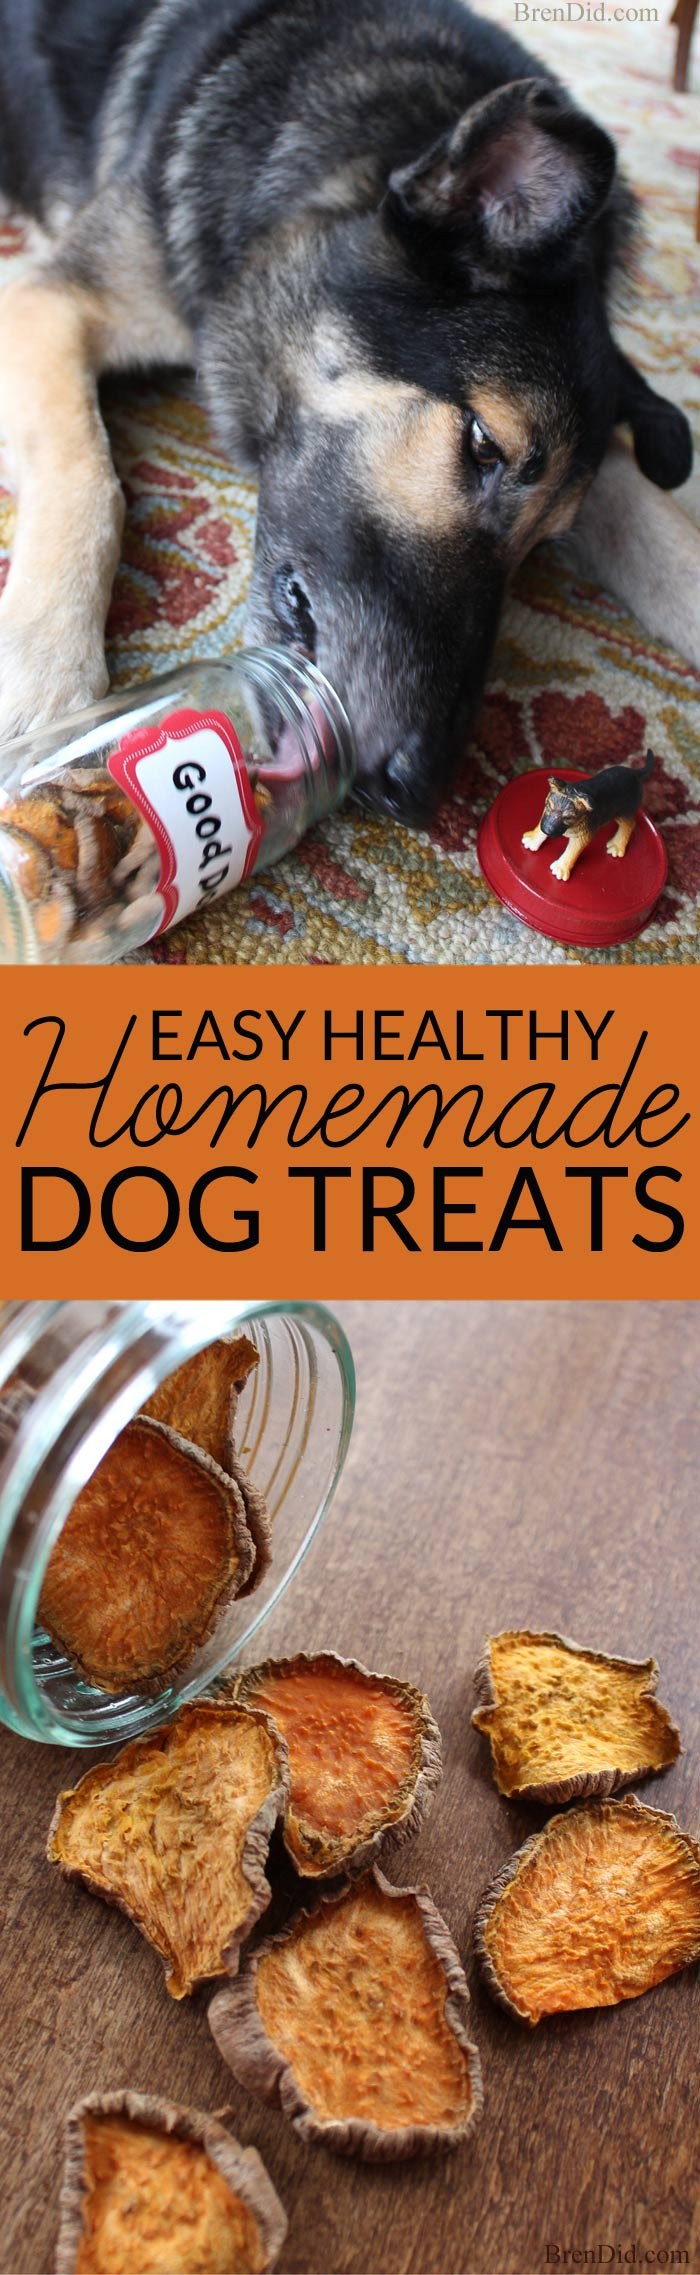 Healthy Dog Snacks  Healthy Homemade Dog Treats Bren Did